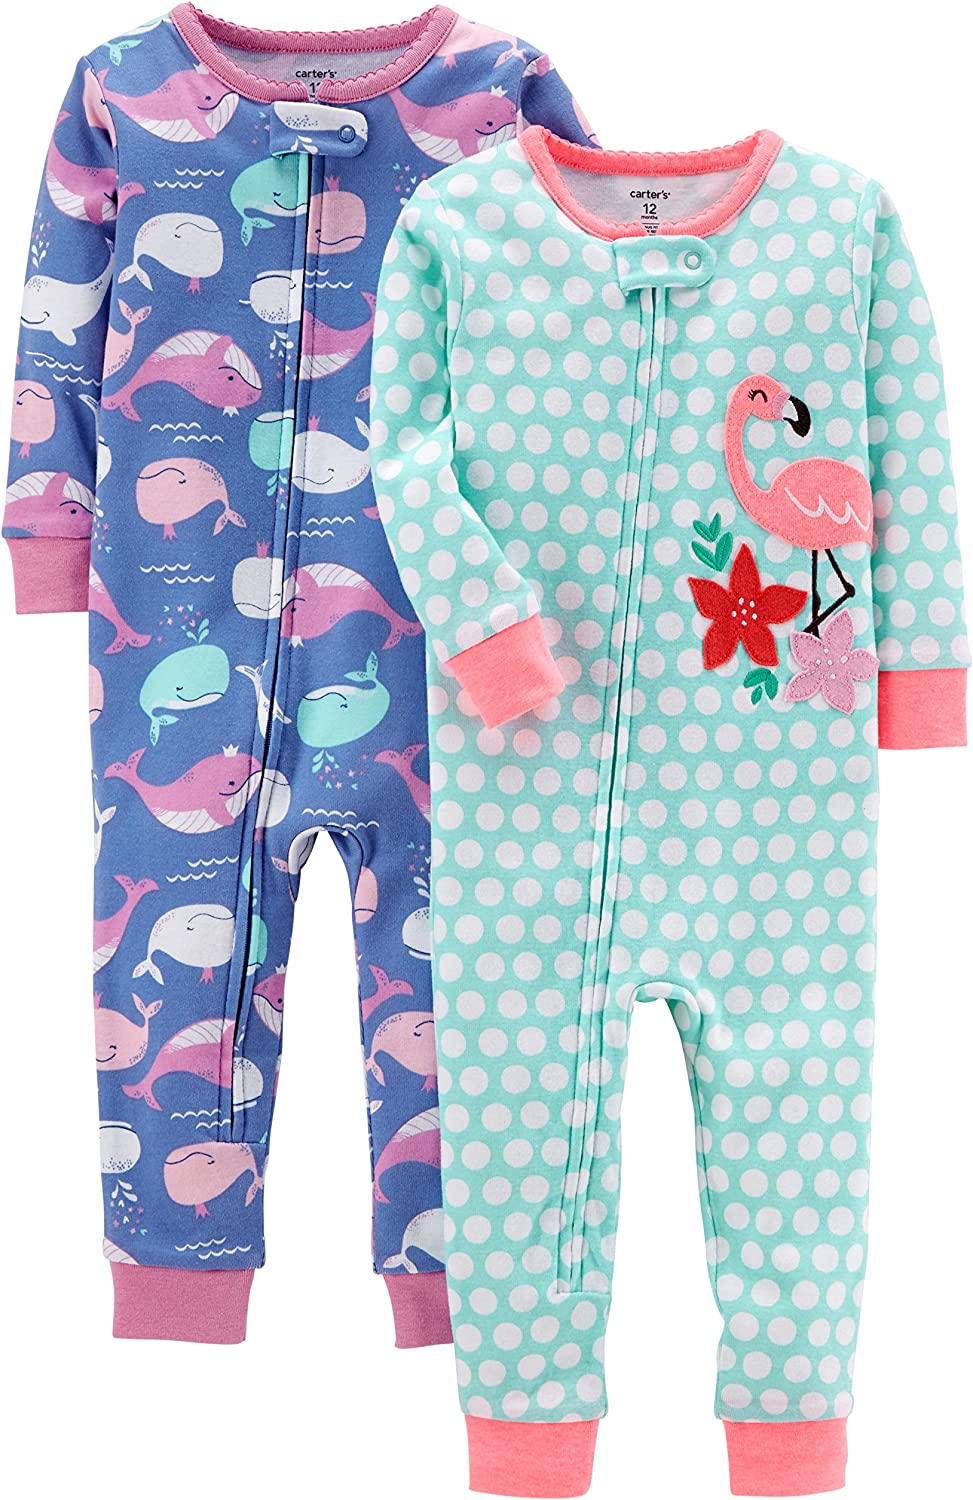 Carters Baby-Girls 2-Pack Cotton Footless Pajamas Sleepers